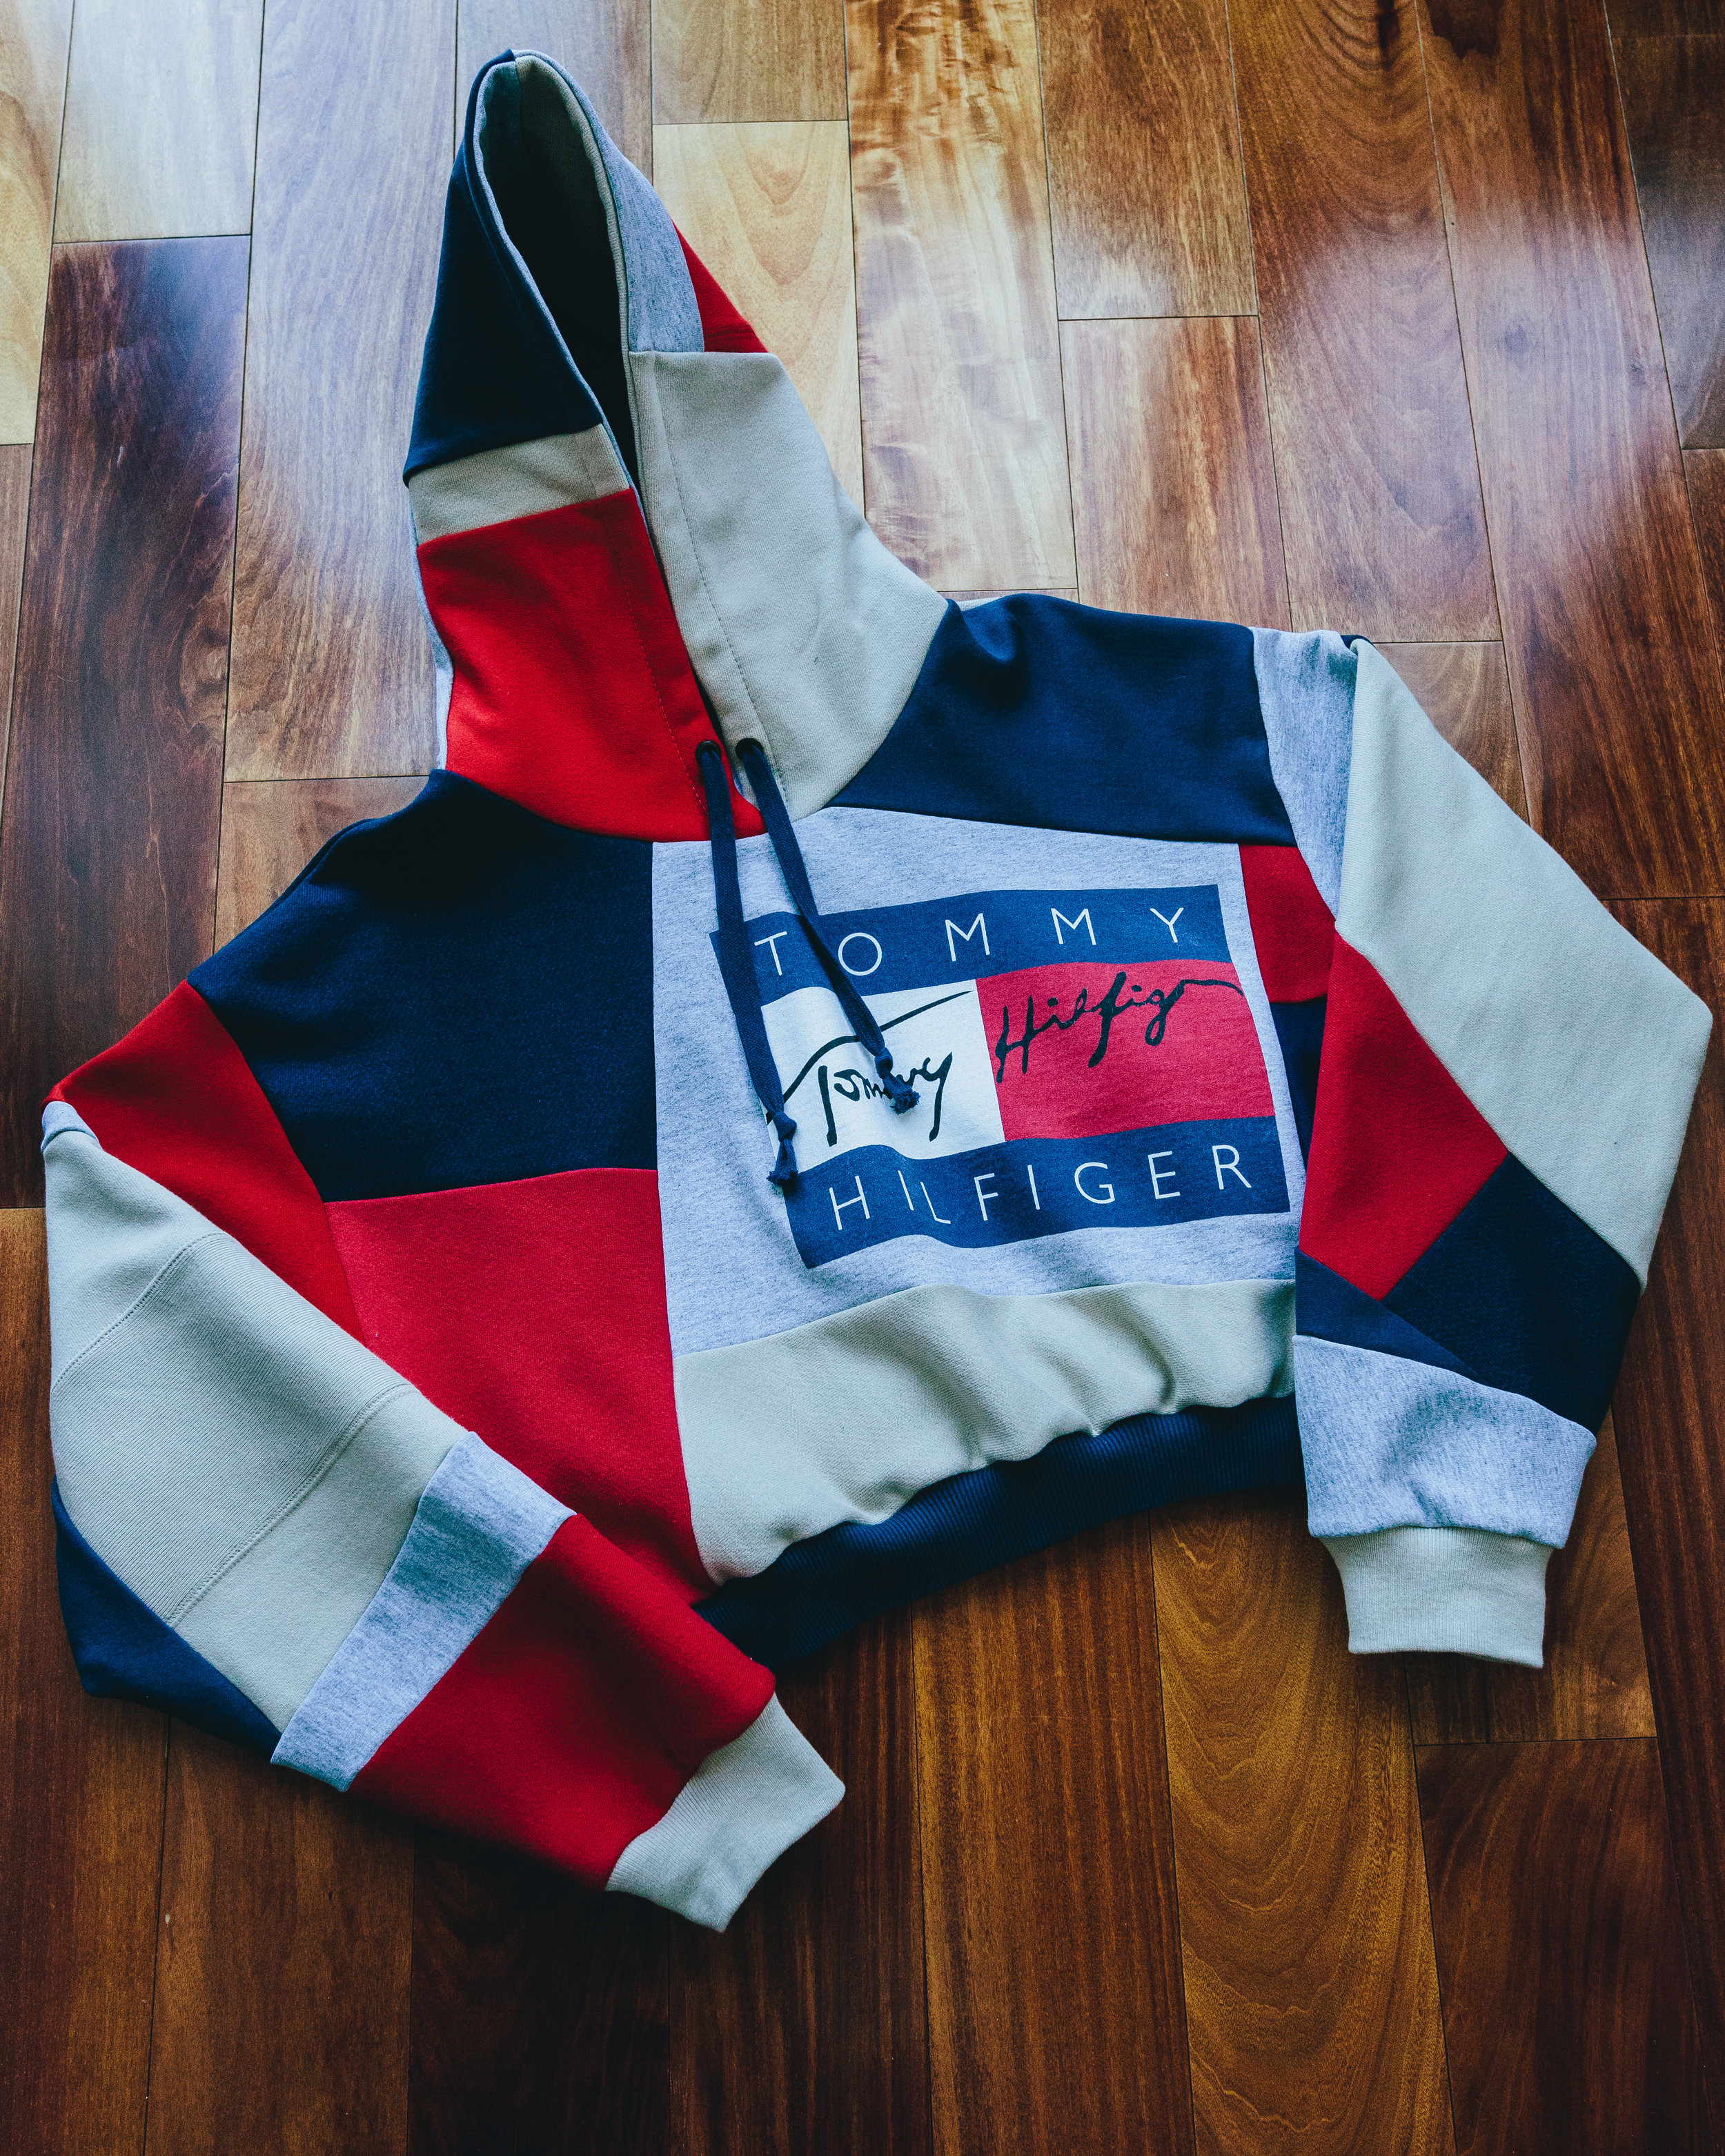 Tommy Crop Hoodie - 3/4 length crop top women's hoodie from a vintage Tommy piece